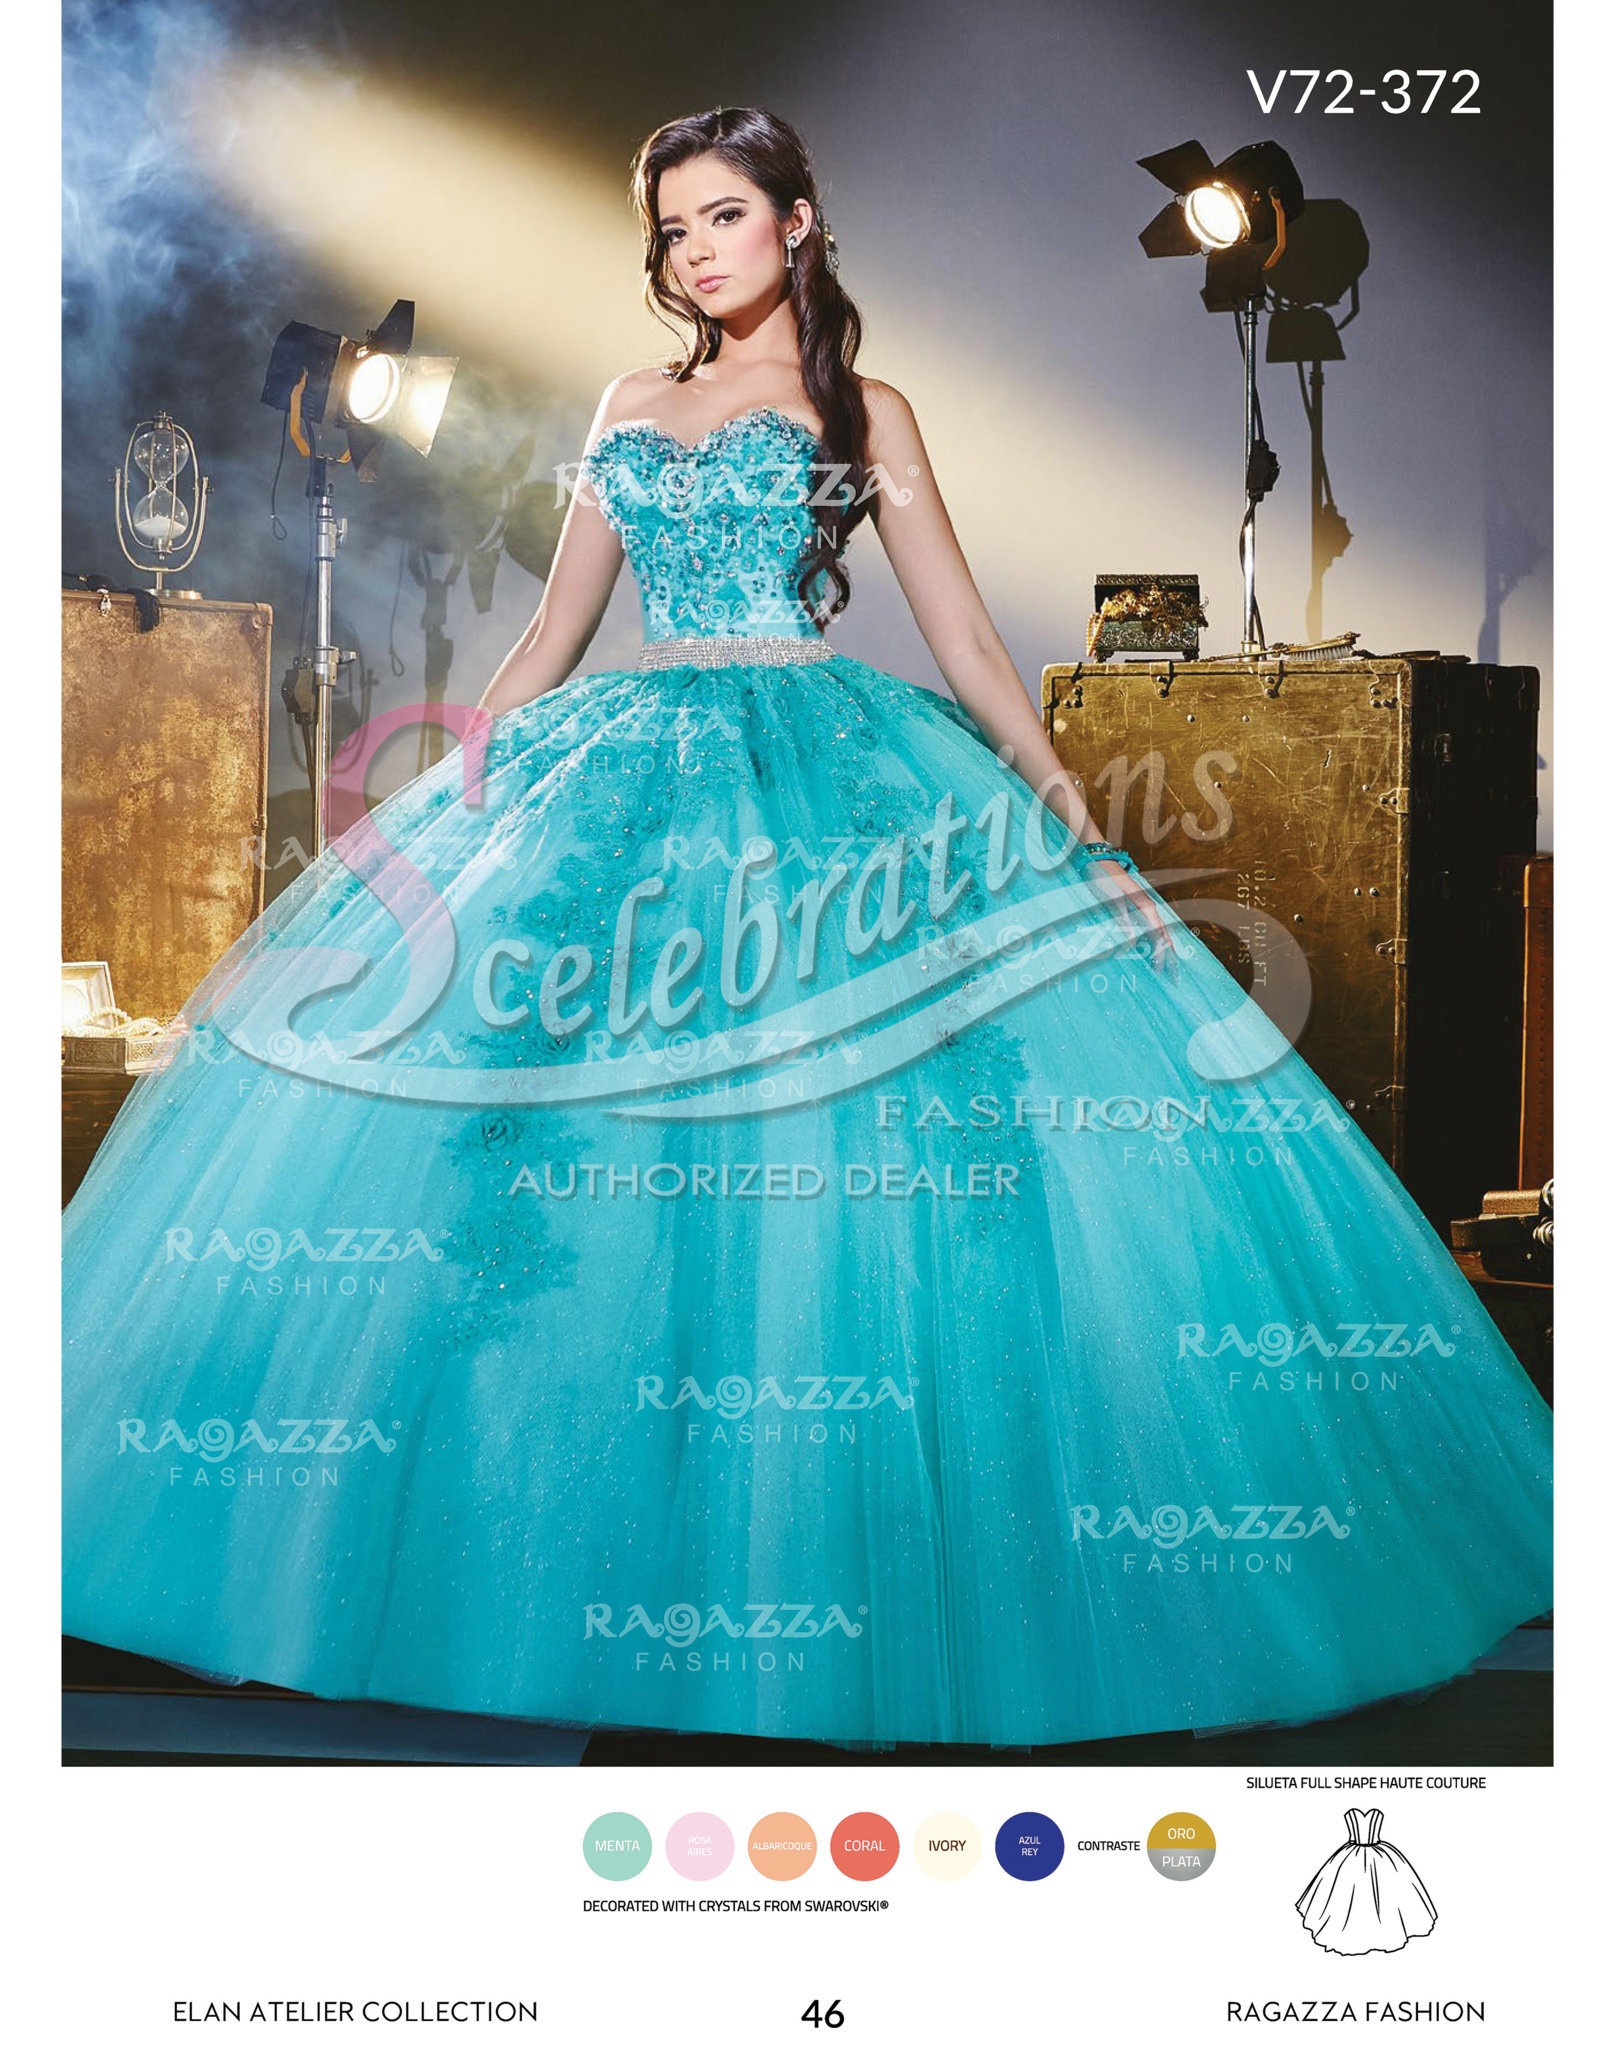 f2f4f45112 RAGAZZA FASHION - Scelebrations